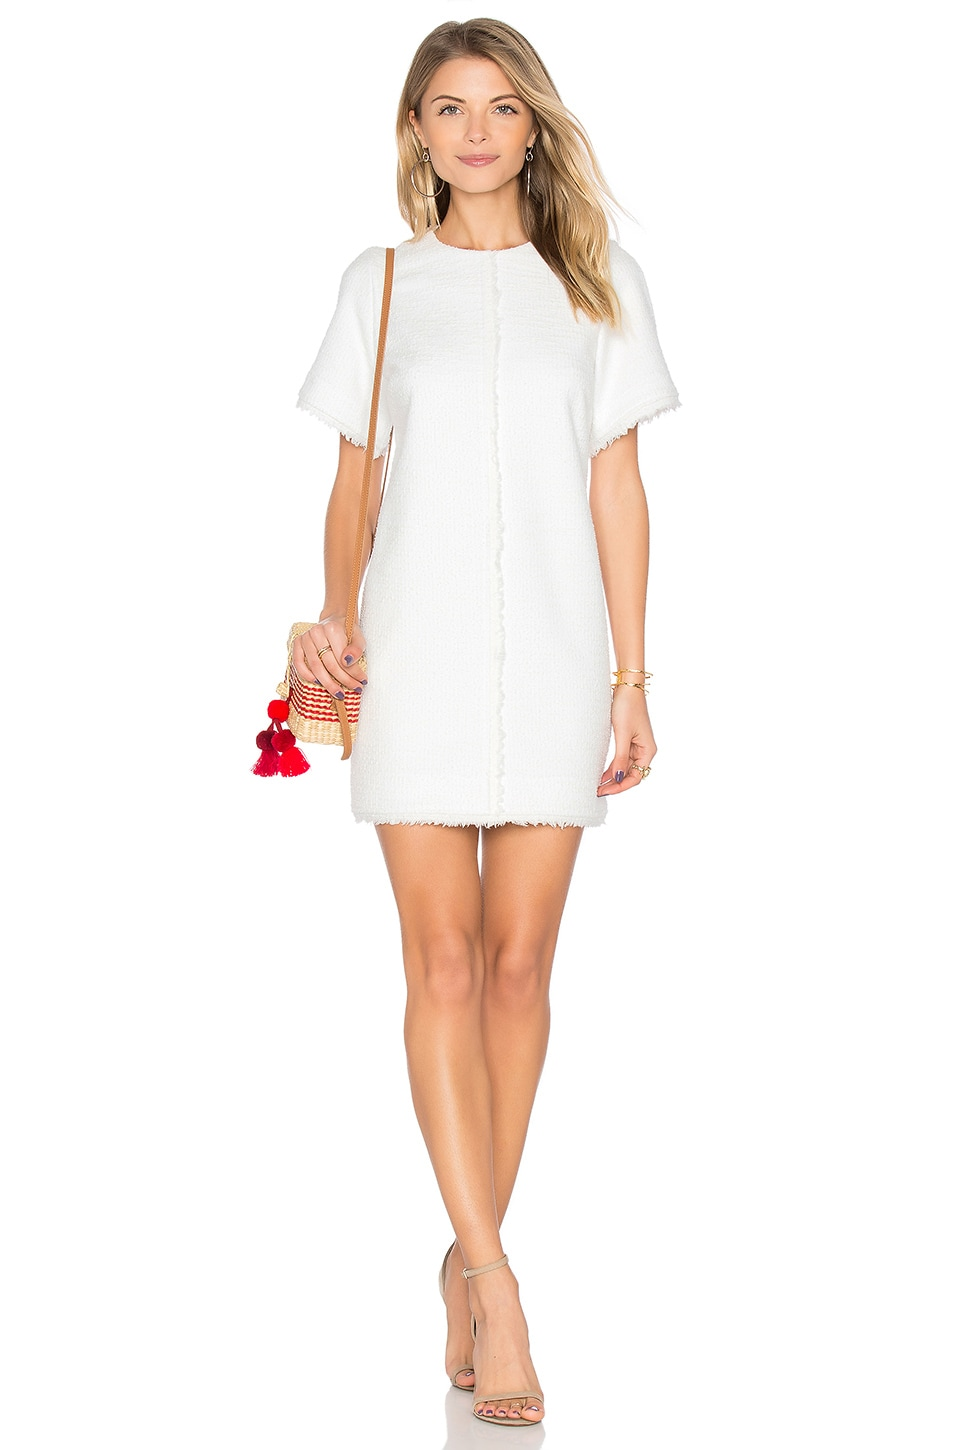 Harris Shift Mini Dress